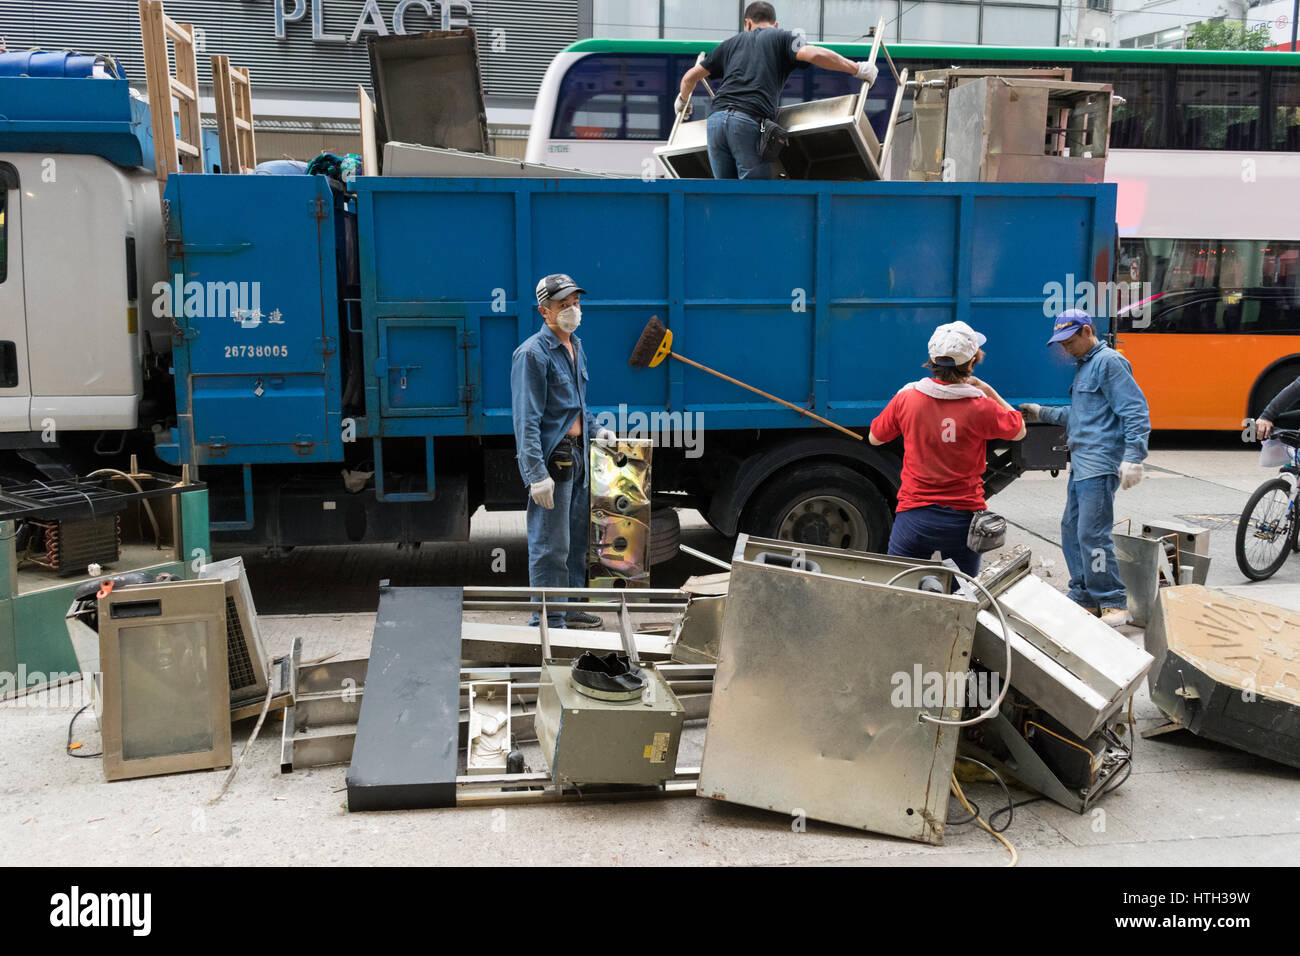 Metal appliances hardware and metal scraps removal by workers in Hong Kong - Stock Image